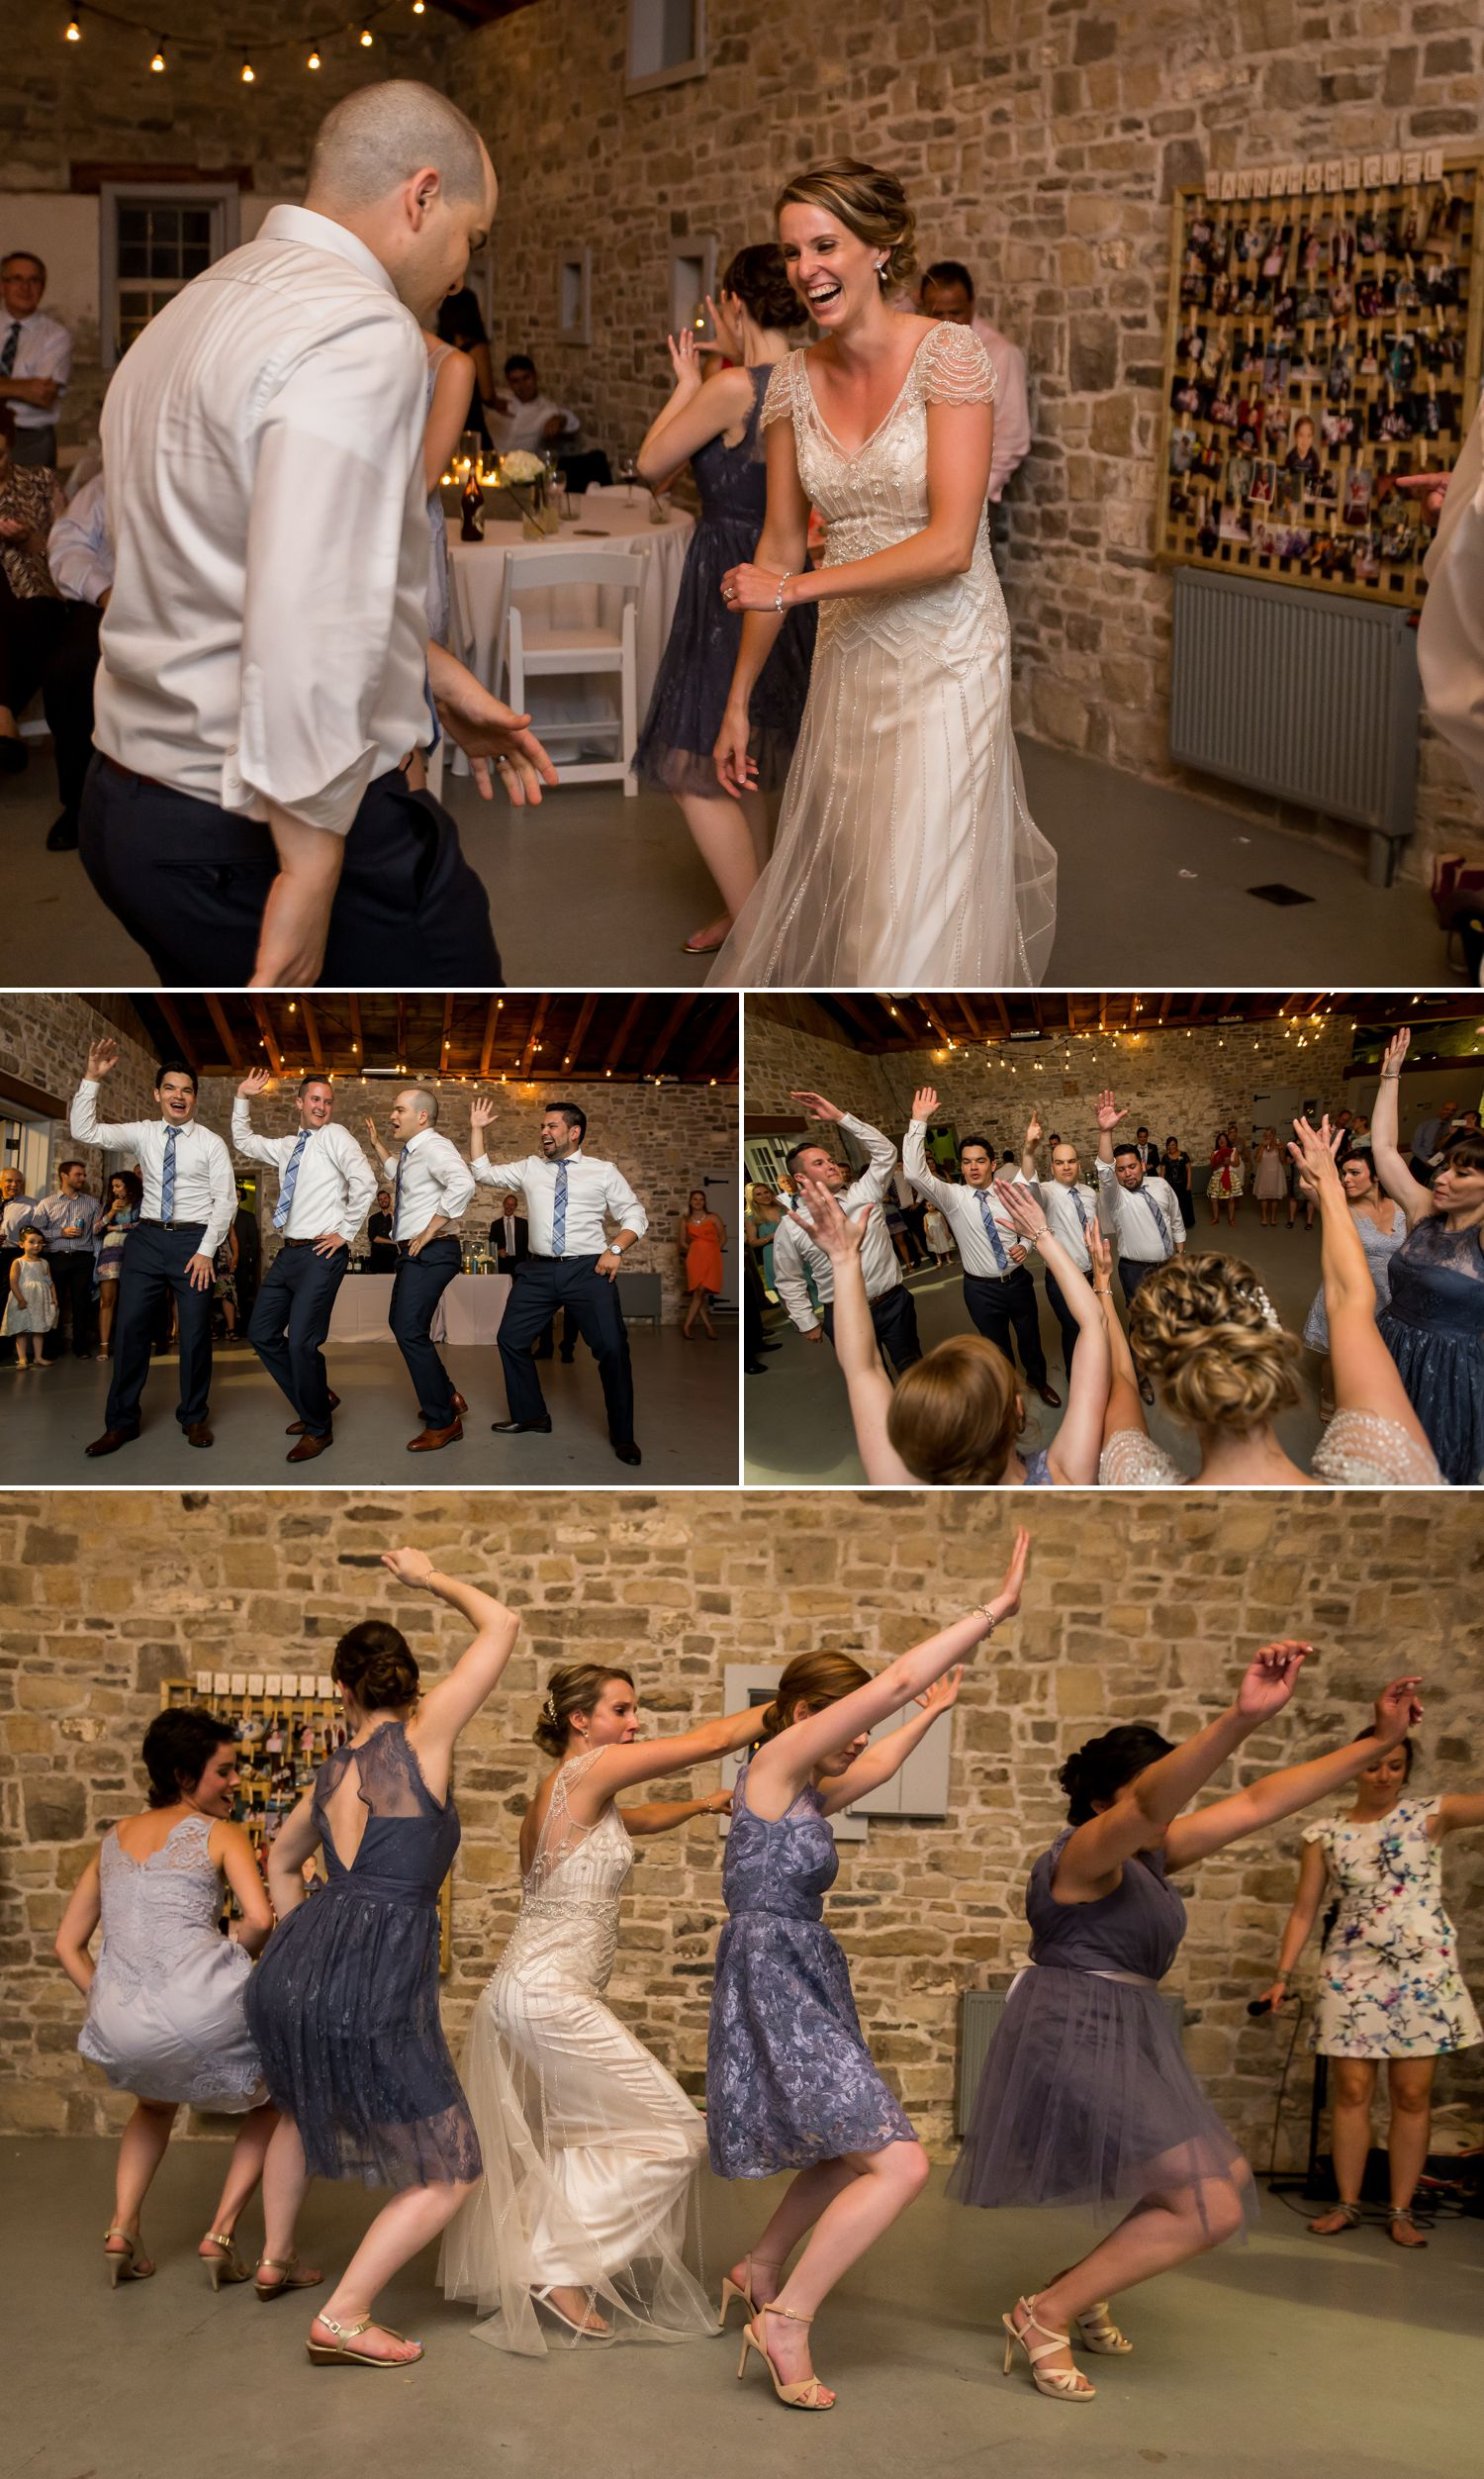 The bride and groom dancing with their wedding party and guests during their wedding reception inside the stone carriage house at Ruthven Heritage Estate